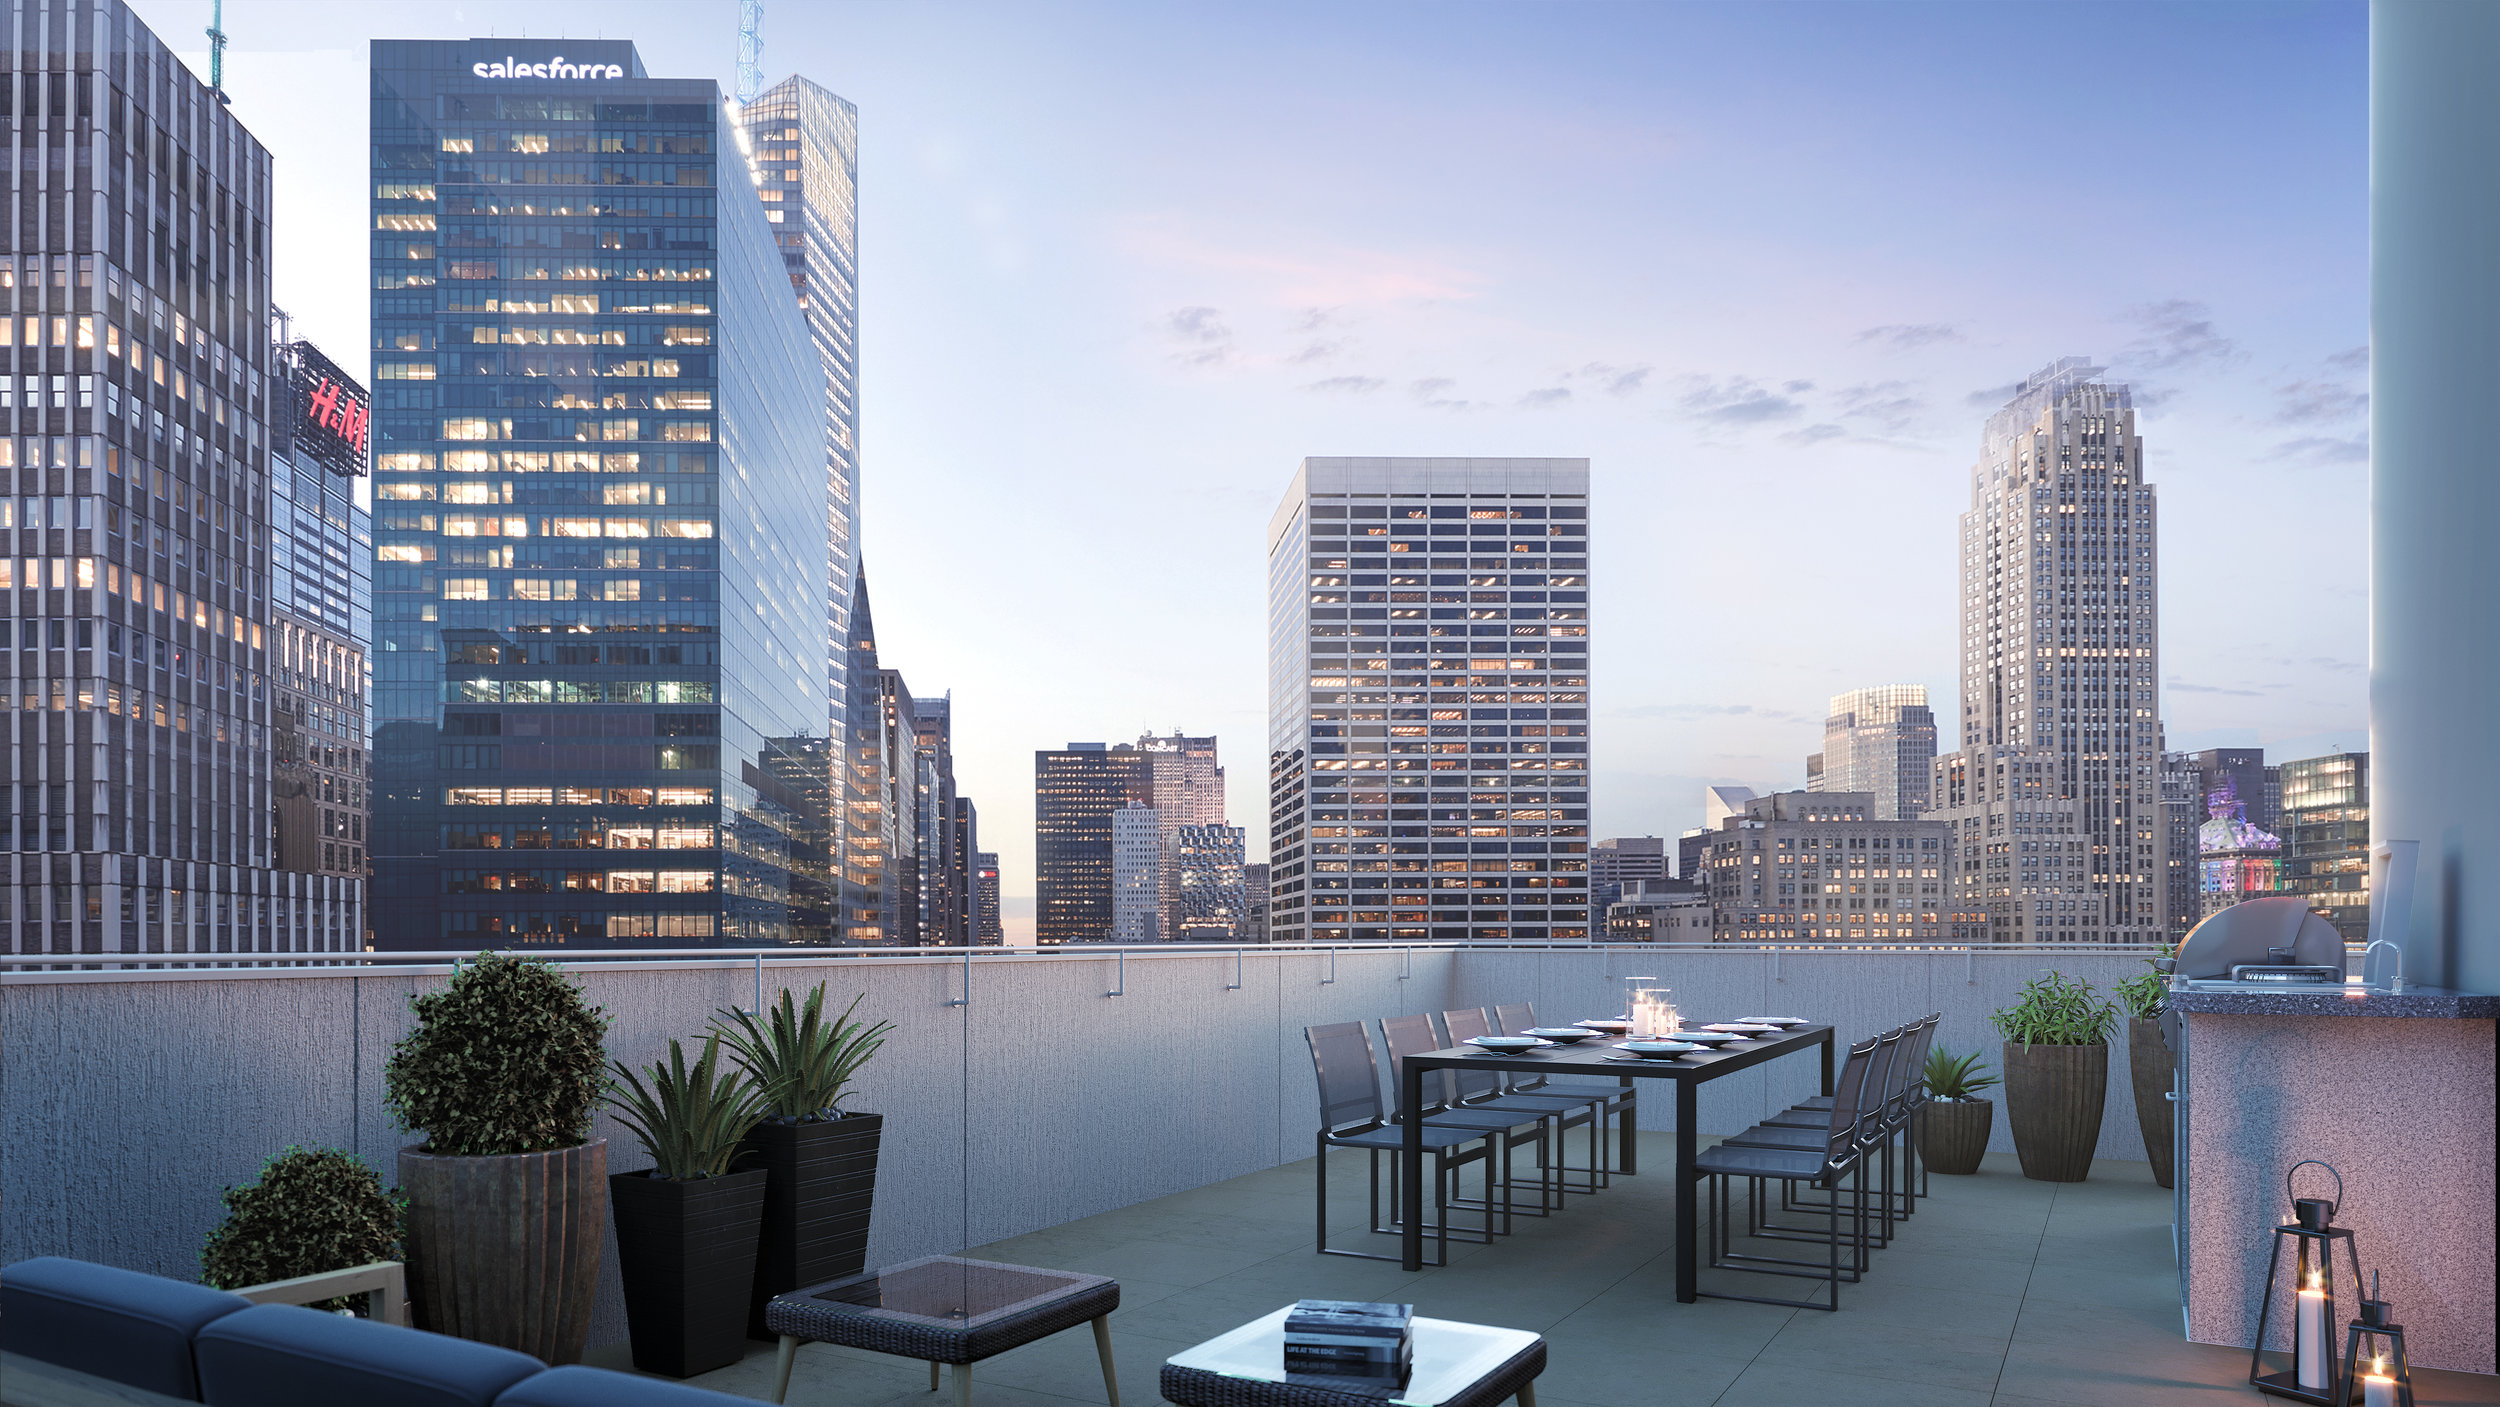 08-1050-Avenue_of_the_America-Private_Roof_Terrace-R05H.jpg